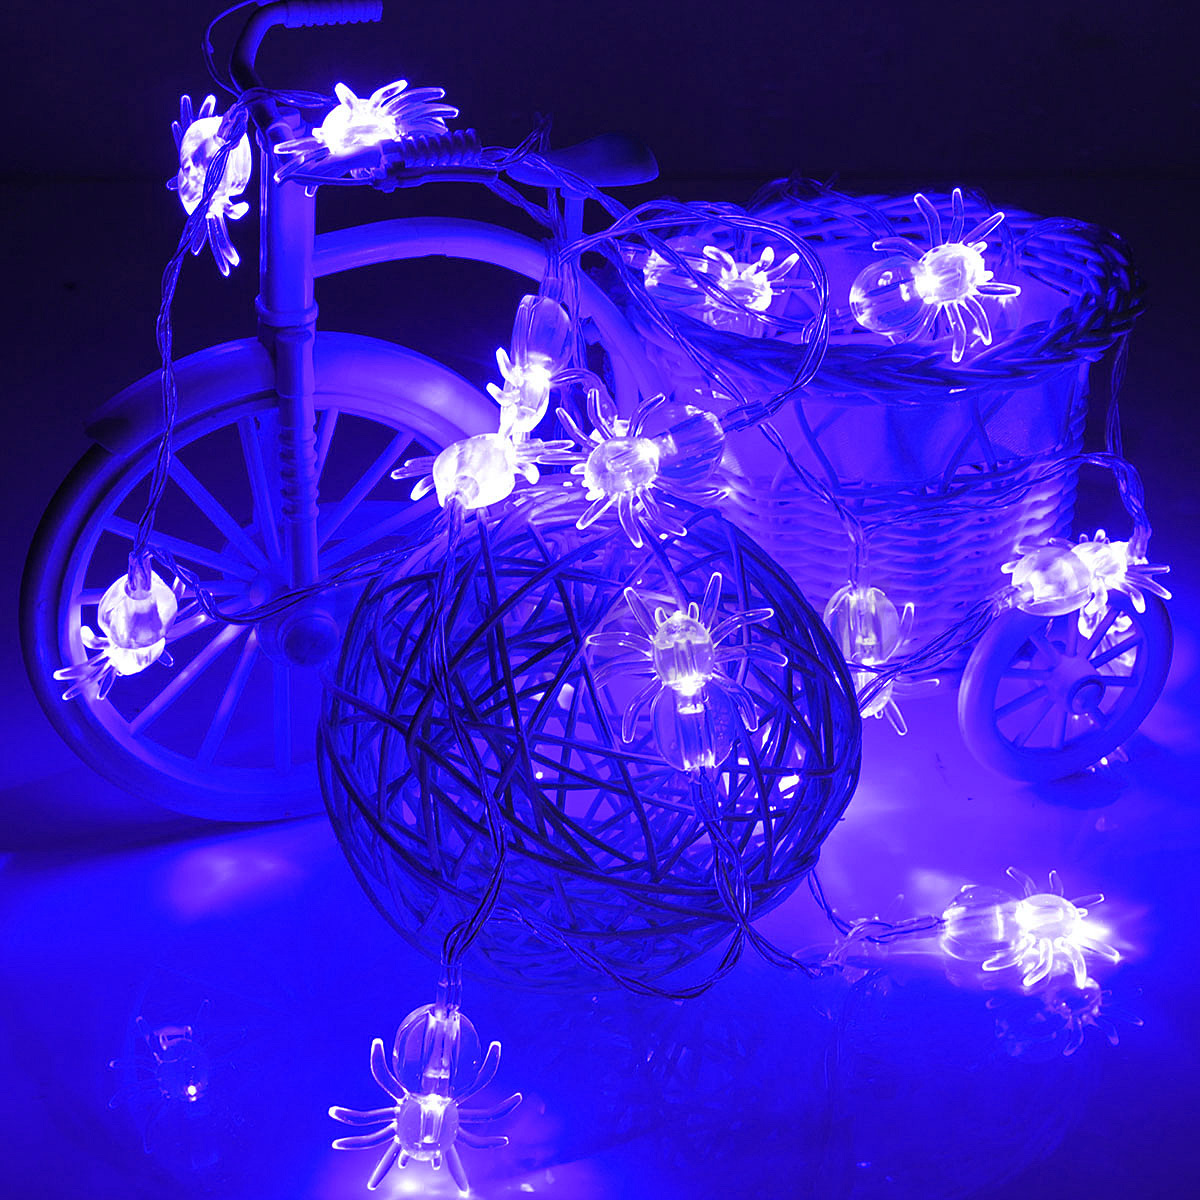 Purple Fairy String Lights : 20 LED Spiders String Fairy Lights Lamps Halloween Xmas Party Home Decor Purple eBay